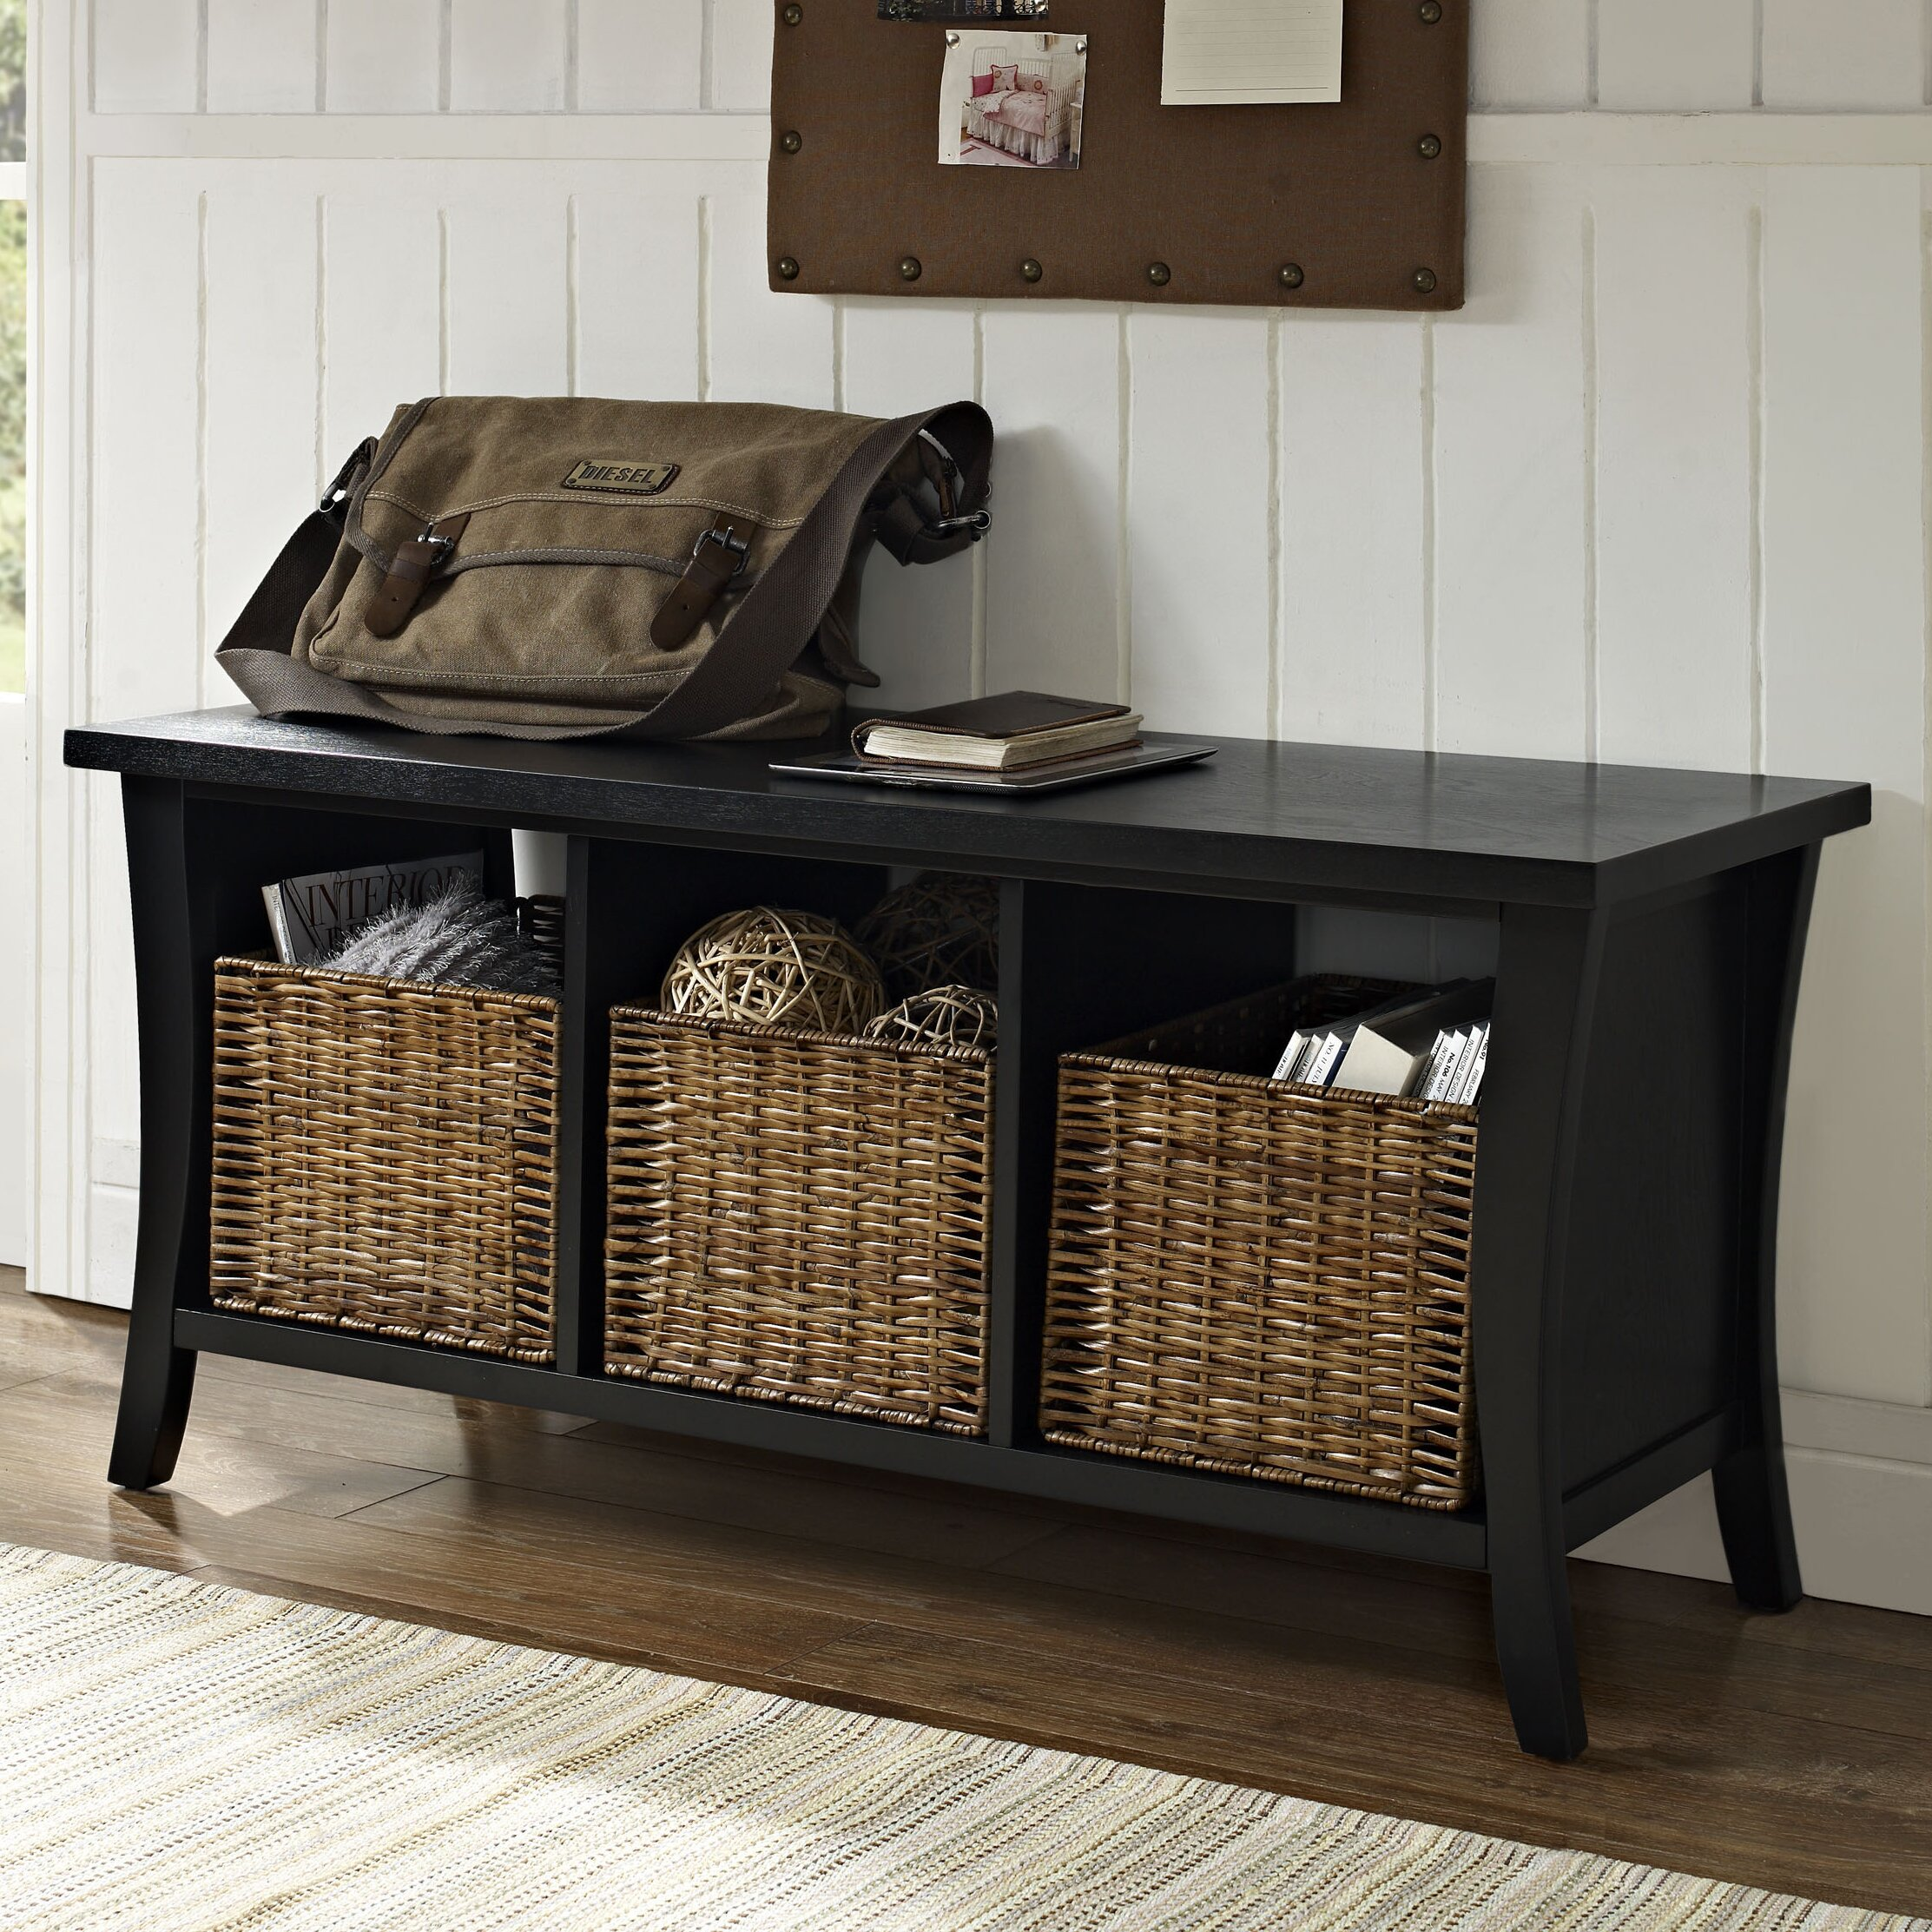 entryway benches with storage organizing | Beachcrest Home Lewisetta Entryway Storage Bench & Reviews ...